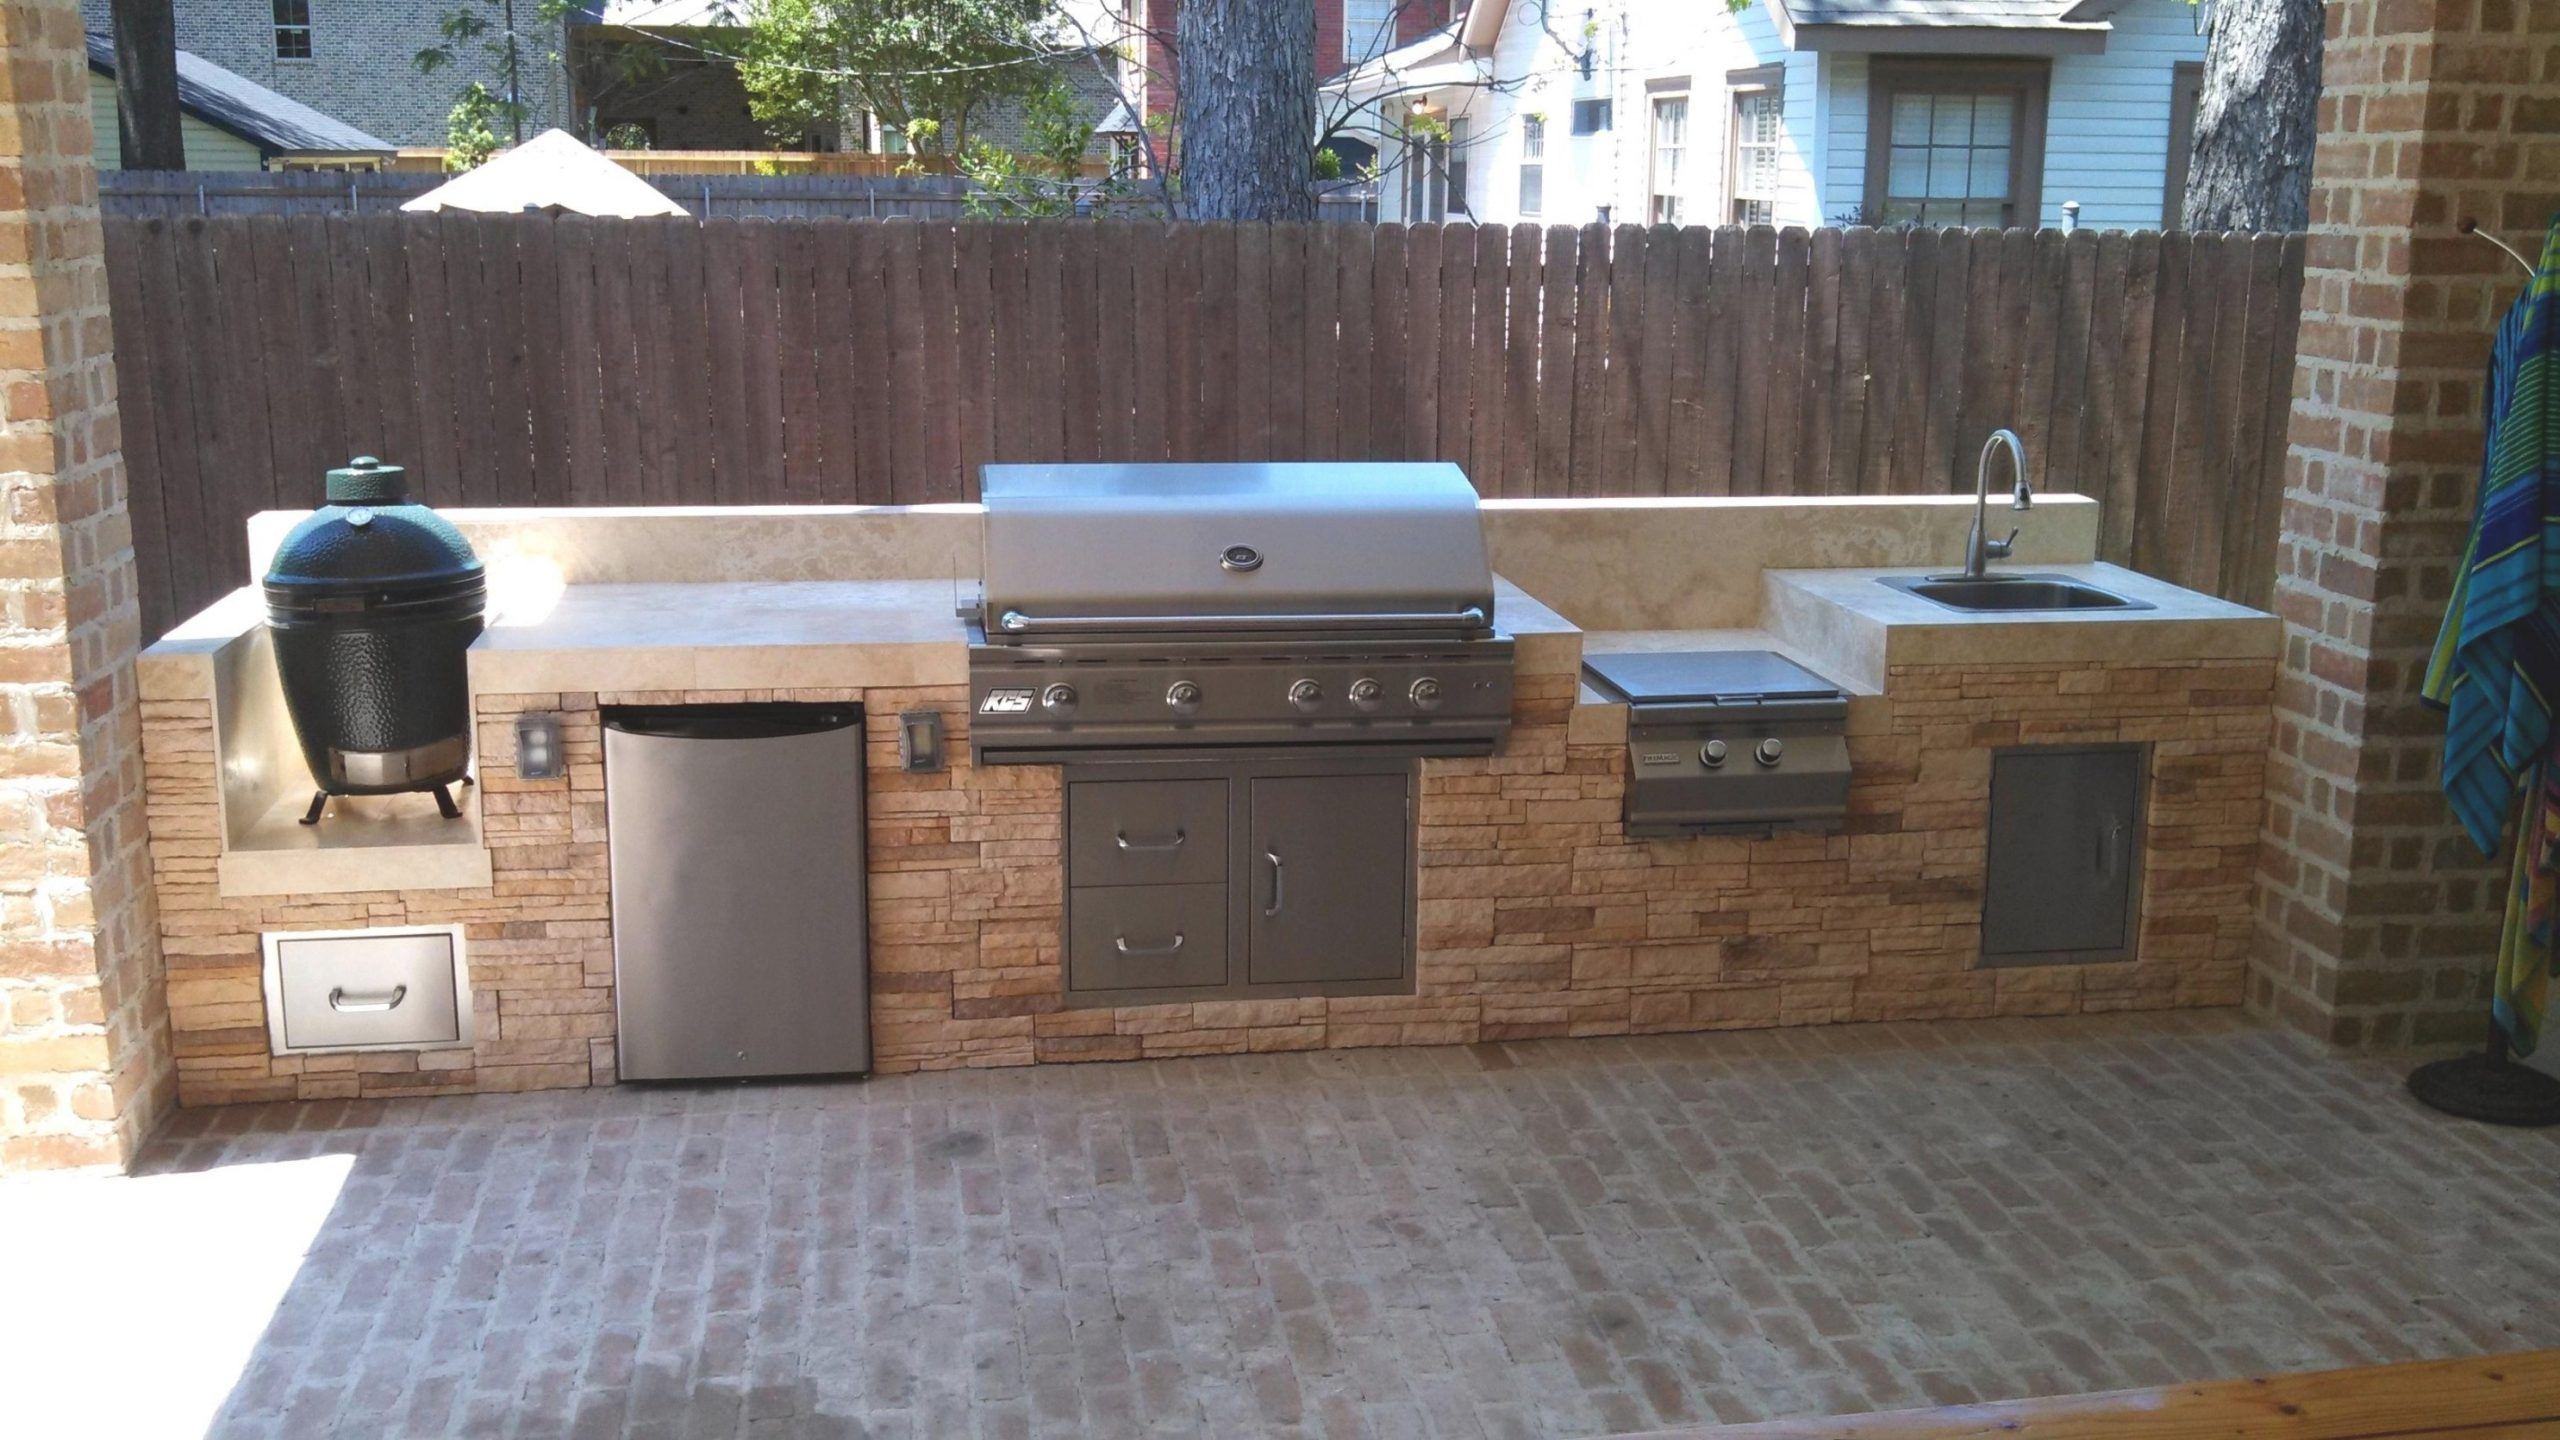 Extraordinary Green Egg Built In Outdoor Kitchen — Randolph pertaining to Big Green Egg Outdoor Kitchen